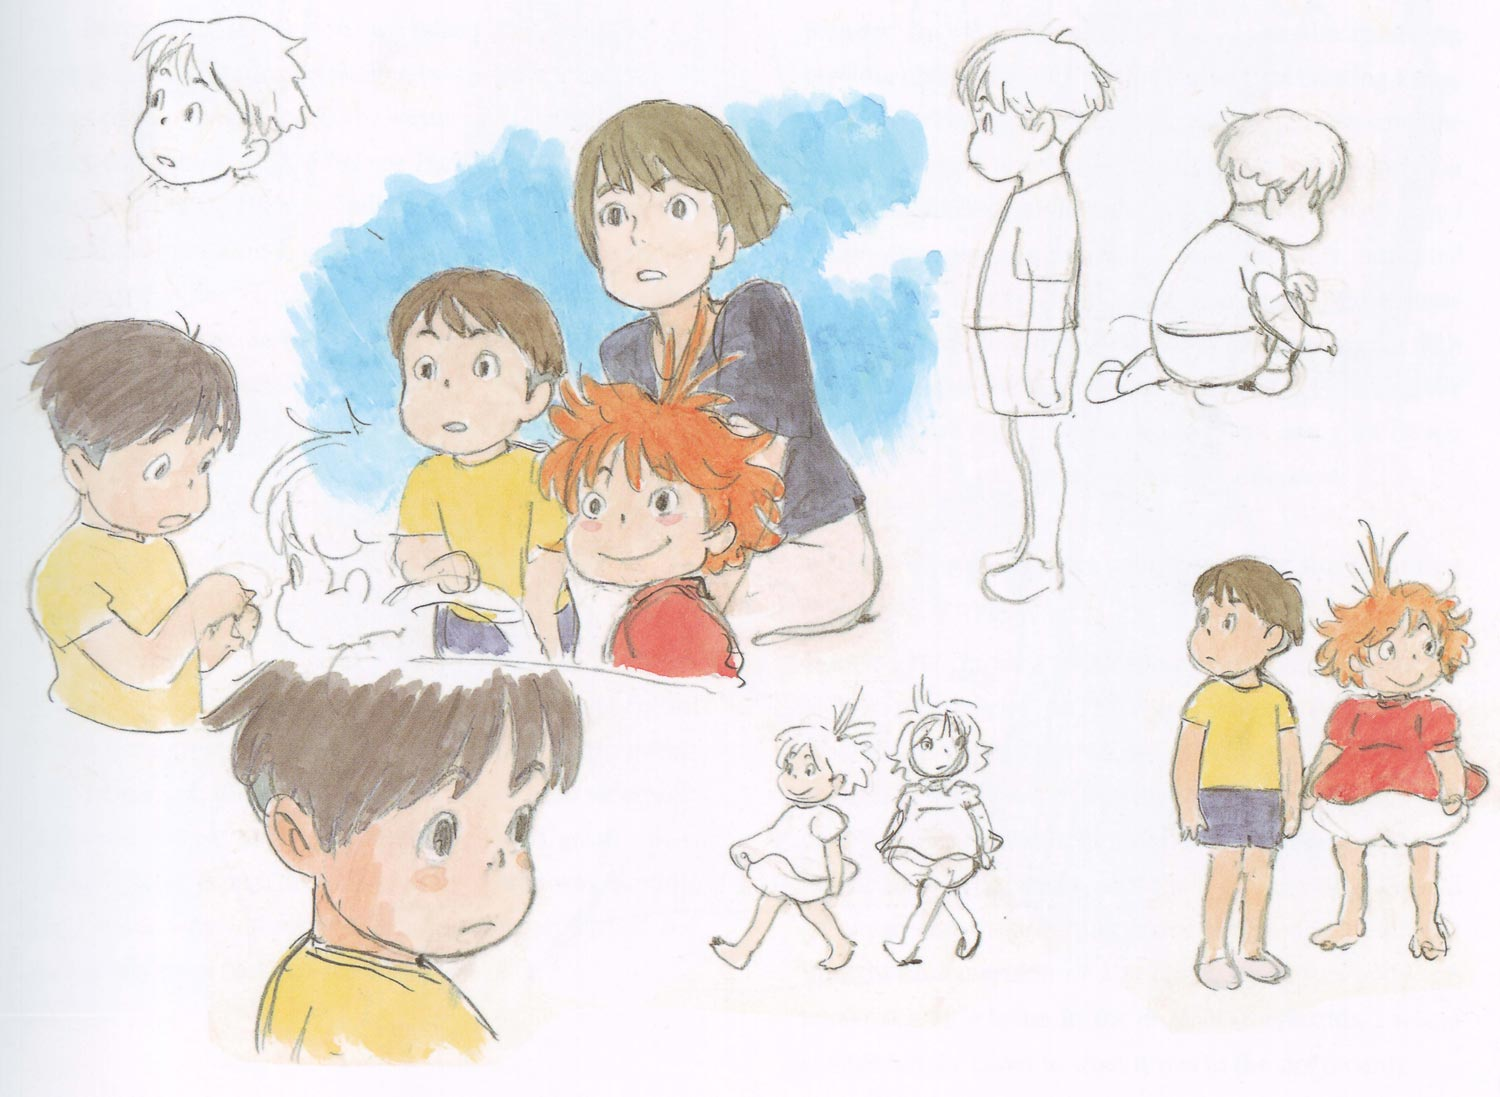 ponyo_on_the_cliff_by_the_sea_artwork_character__02.jpg